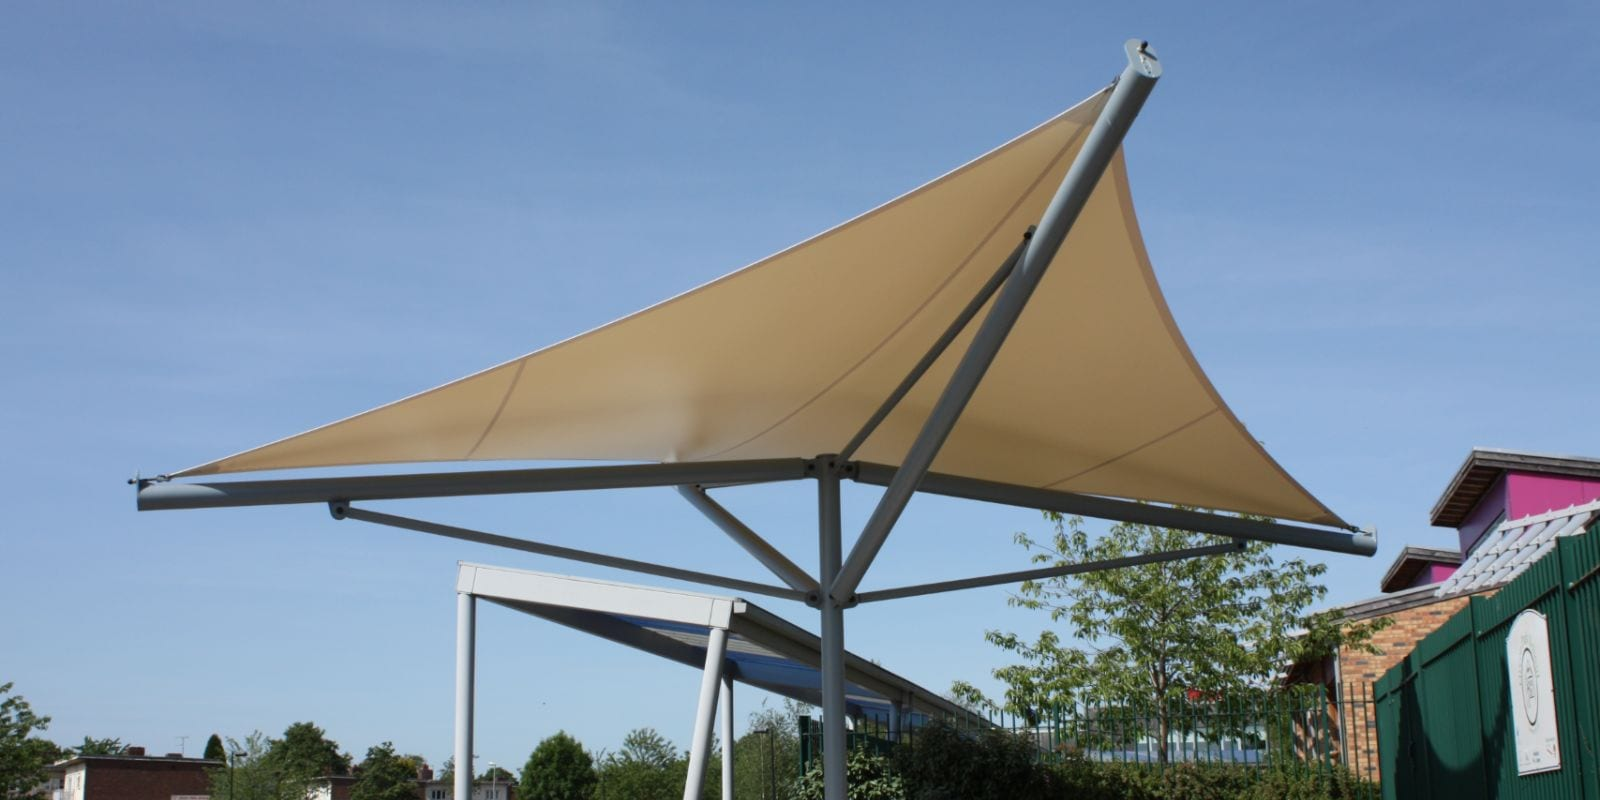 Freestanding canopy we designed for Green Park Primary School